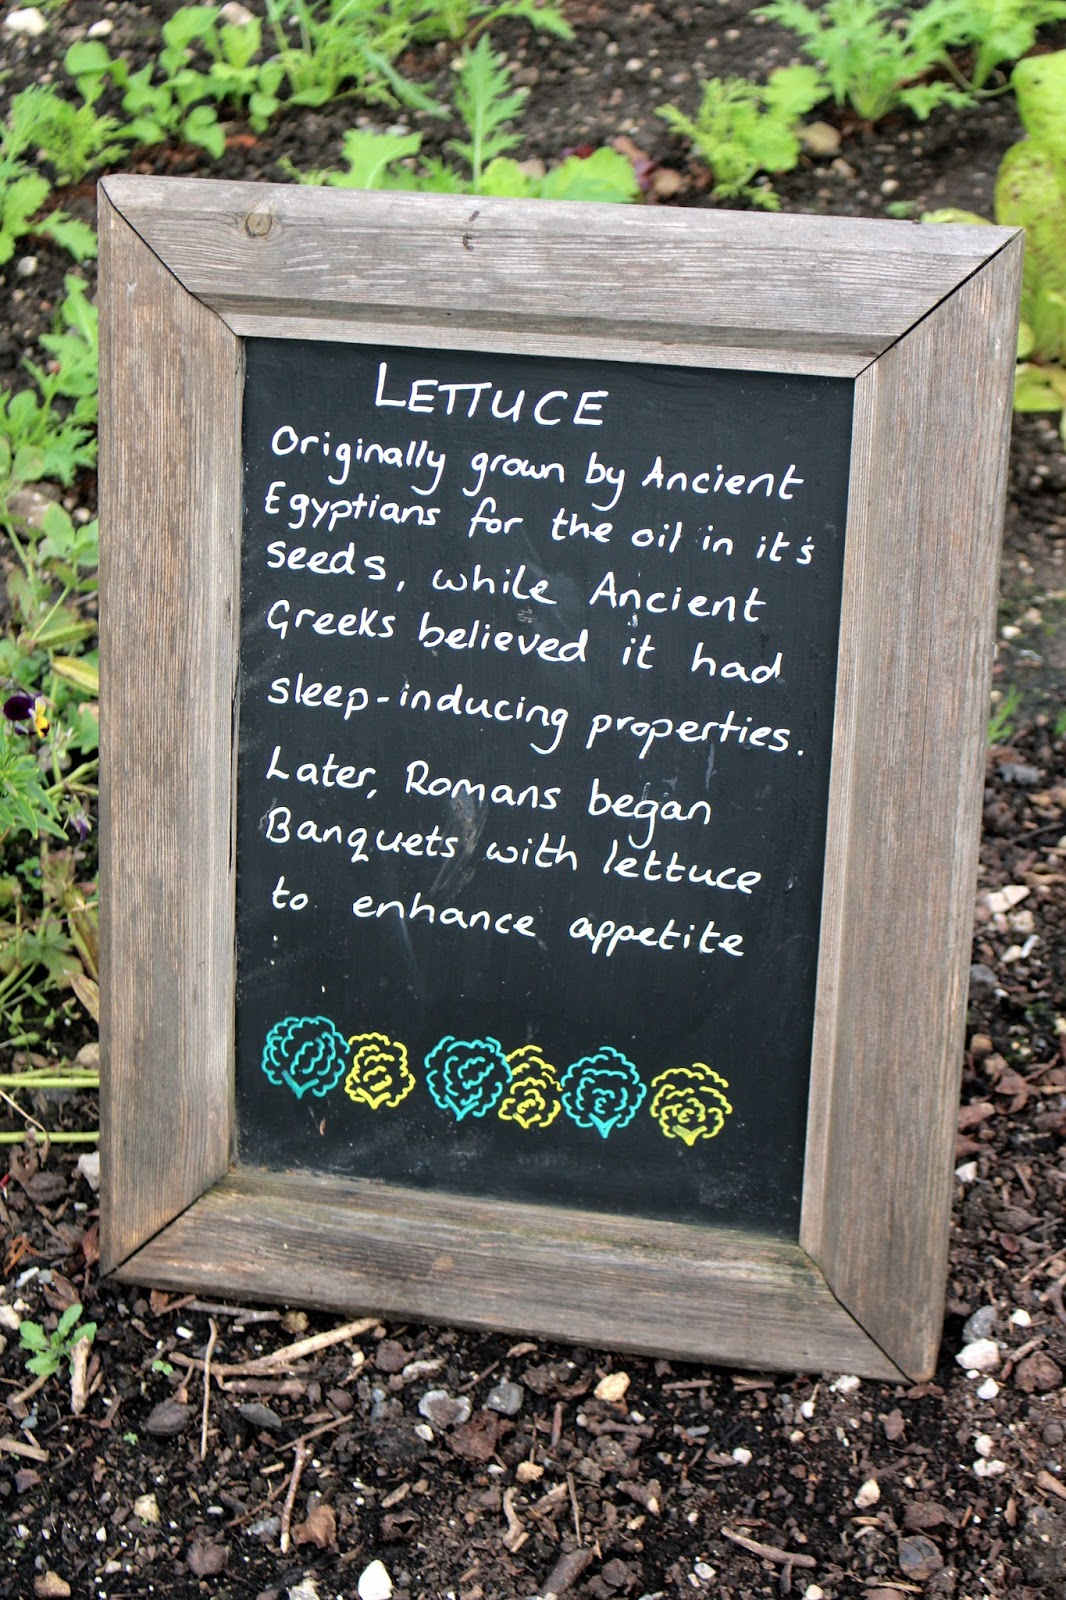 Interesting history of facts about lettuce